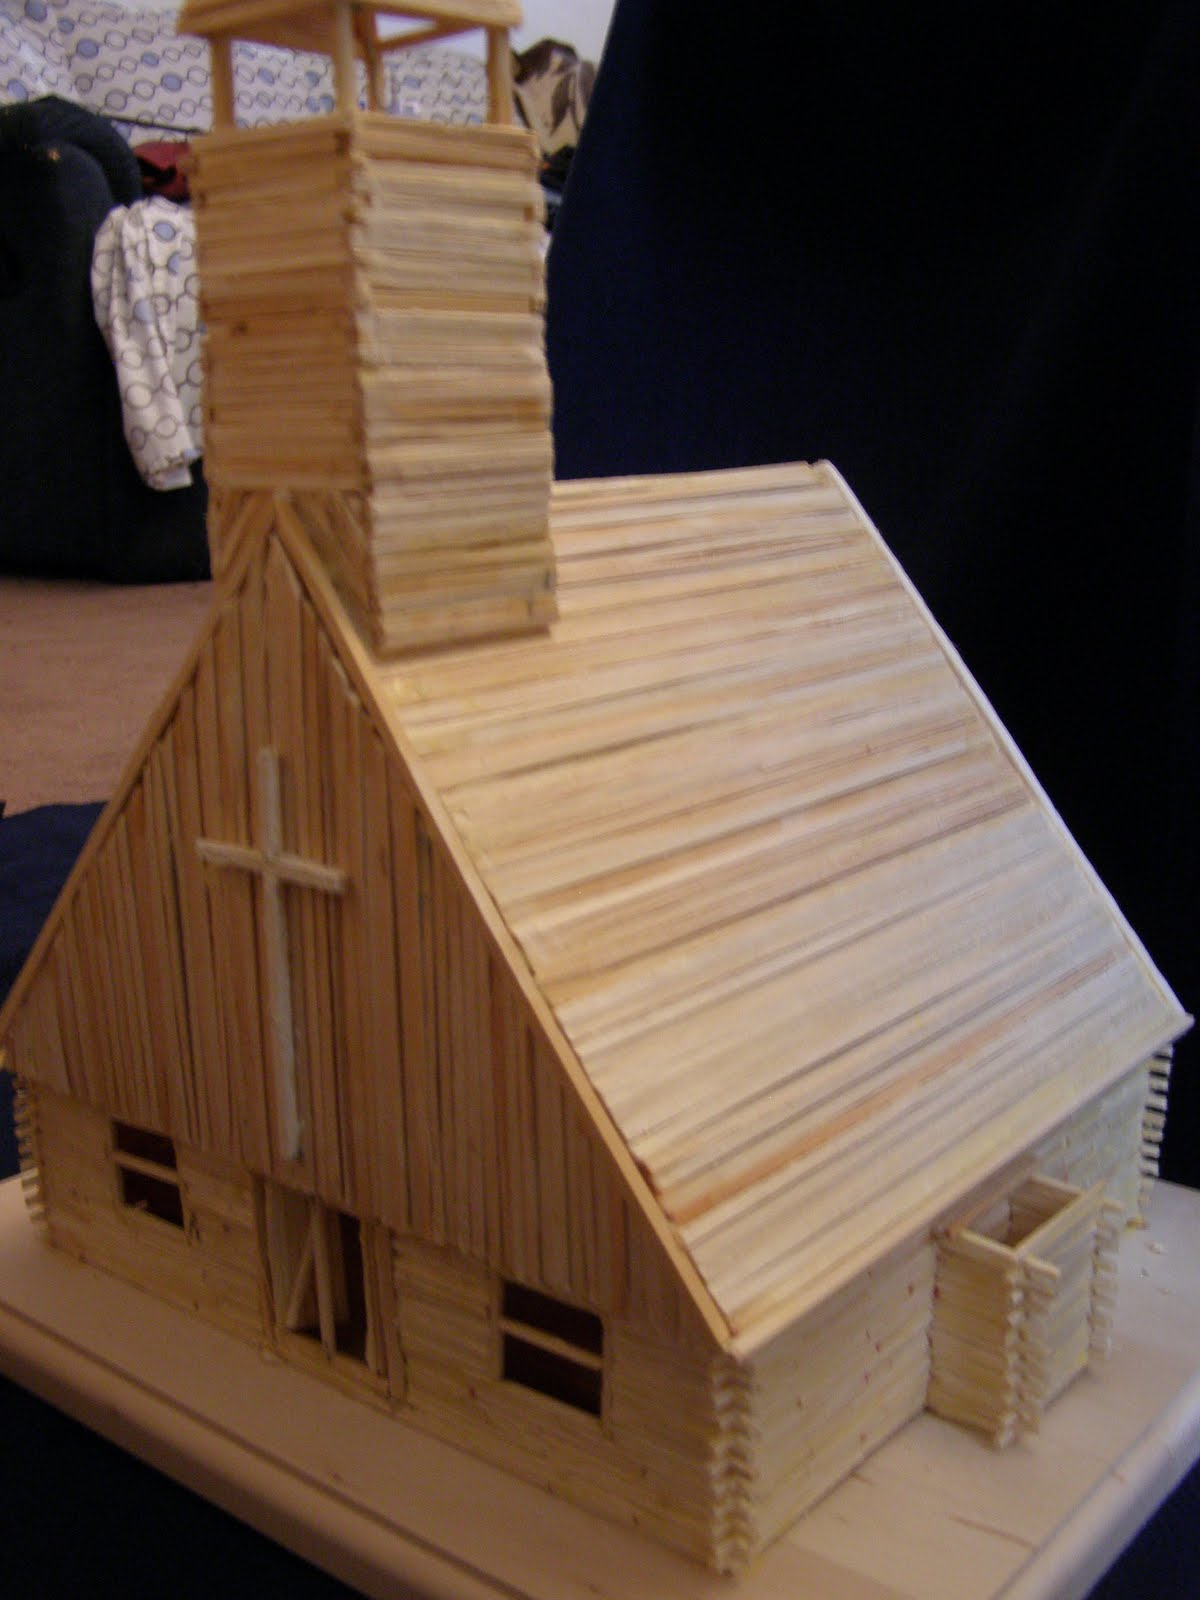 Miniature log cabins main page miniature log cabins and for Mini wooden house